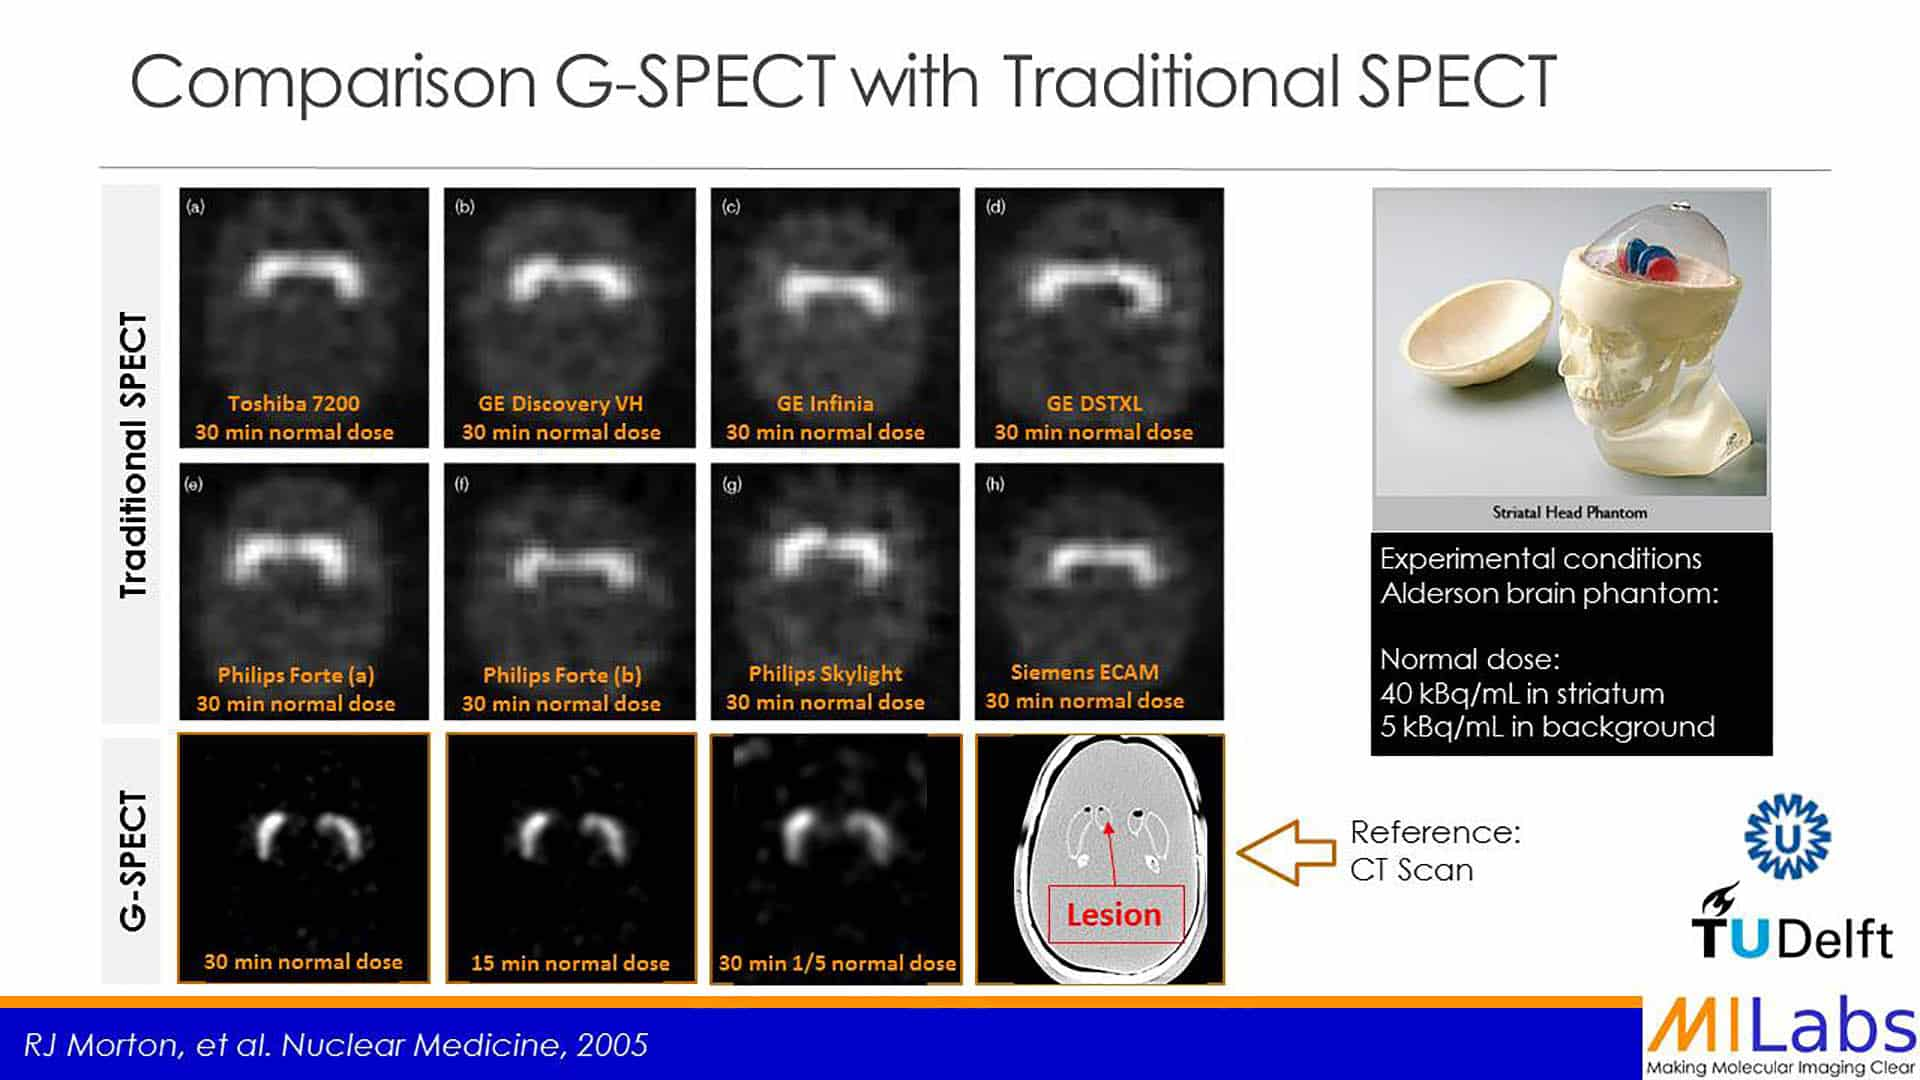 comparison of GSPECT imaging with traditional SPECT